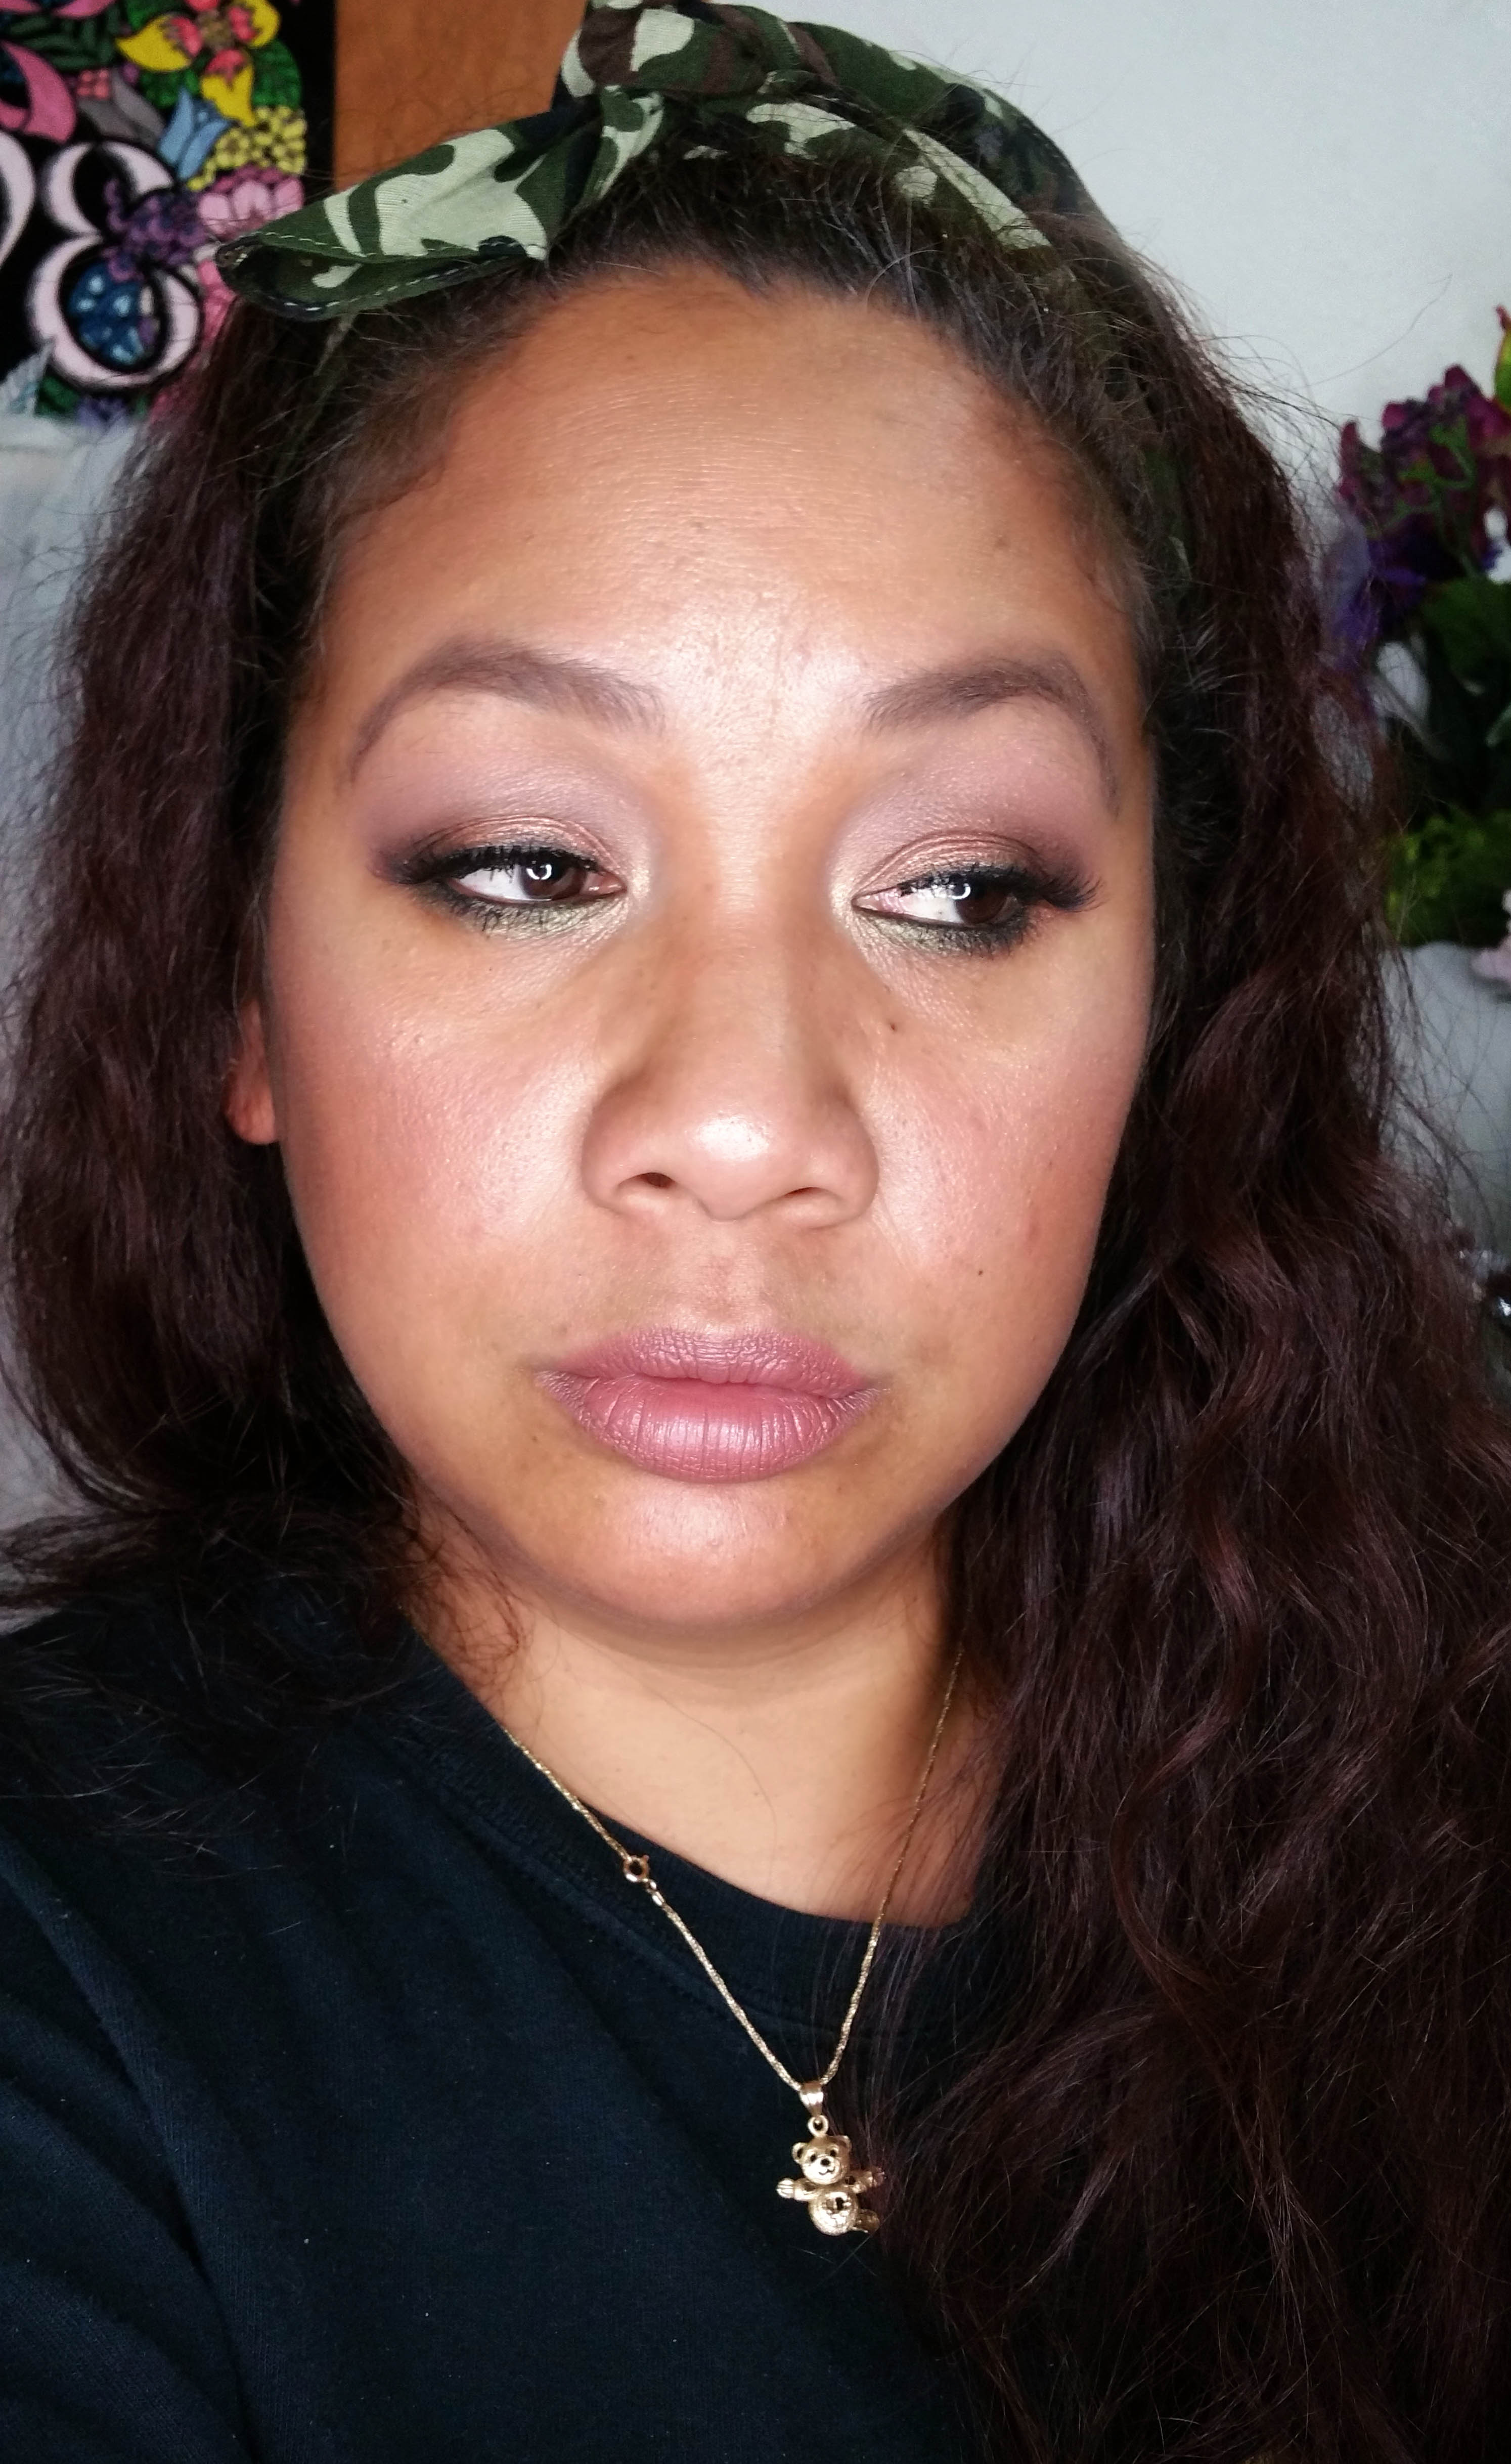 fotd, grwm, look of the day, lotd, makeup, makeup tutorial, makeup look, makeup porn, smoky eye, bronze makeup, summer bronze, milani, colourpop, ardell, makeup revolution, shimmer brick radiant, makeup for women in their 30s,